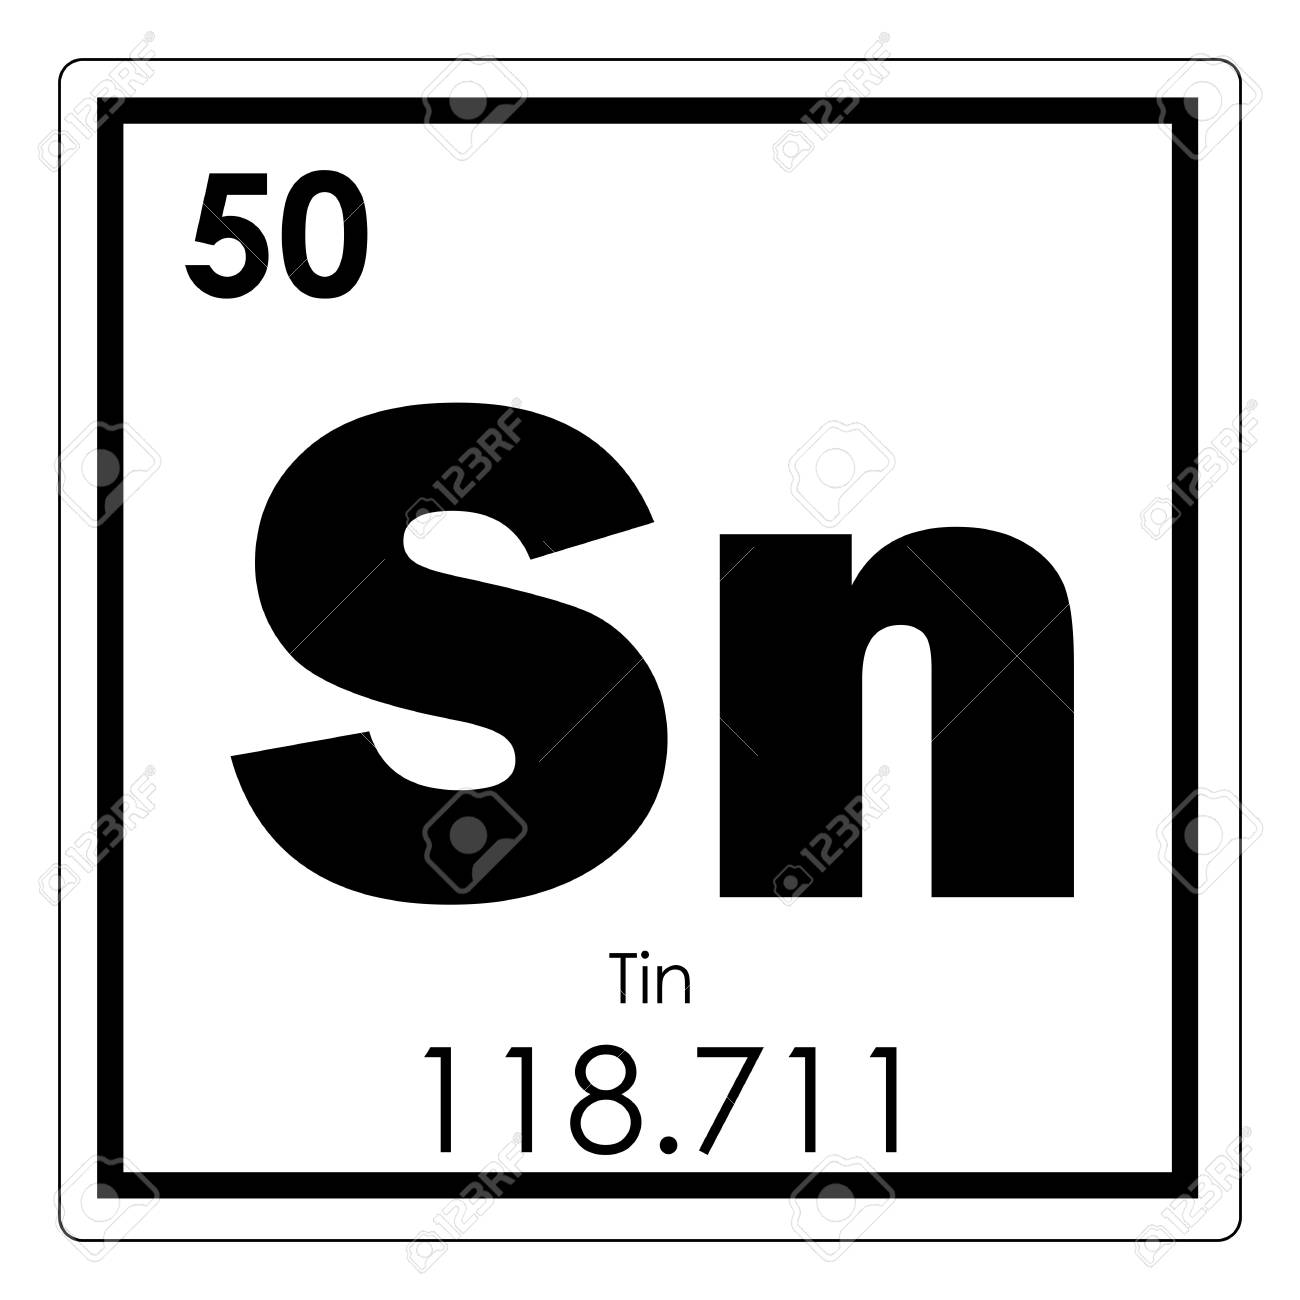 Tin Chemical Element Periodic Table Science Symbol Stock Photo